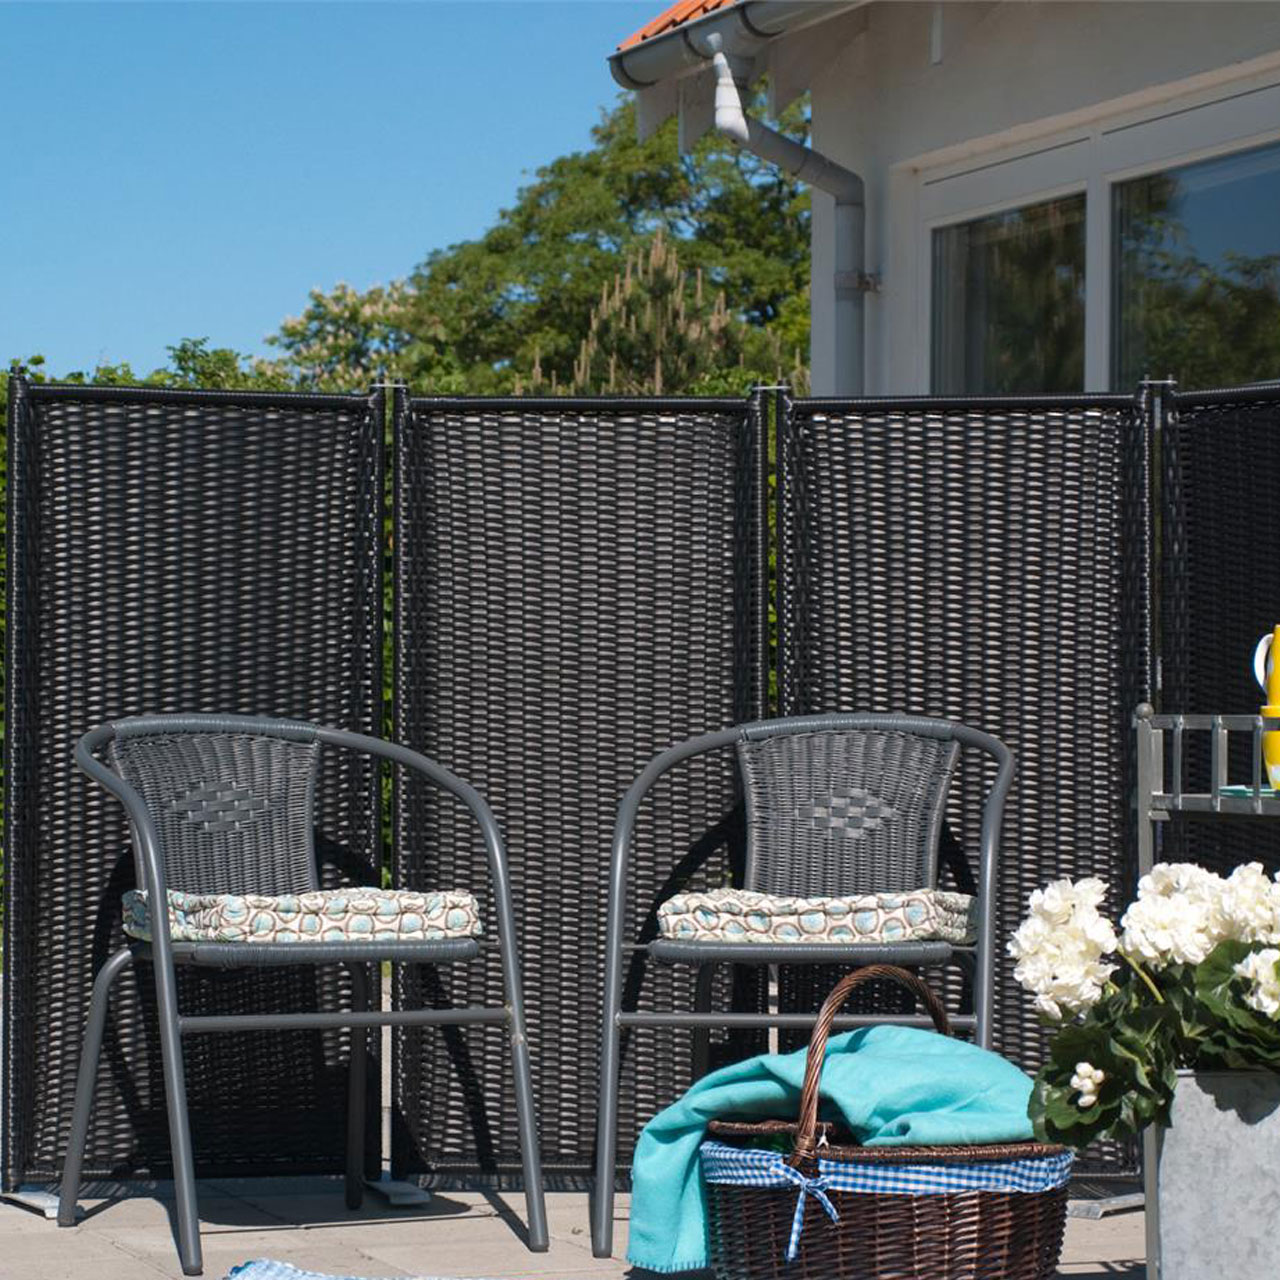 Full Size of Outdoor Paravent Metall Ikea Anthrazit Balkon Shades Of Venice Terrasse 2m Hoch Holz 180 Cm Trend 4 Teilig Küche Edelstahl Garten Kaufen Wohnzimmer Outdoor Paravent